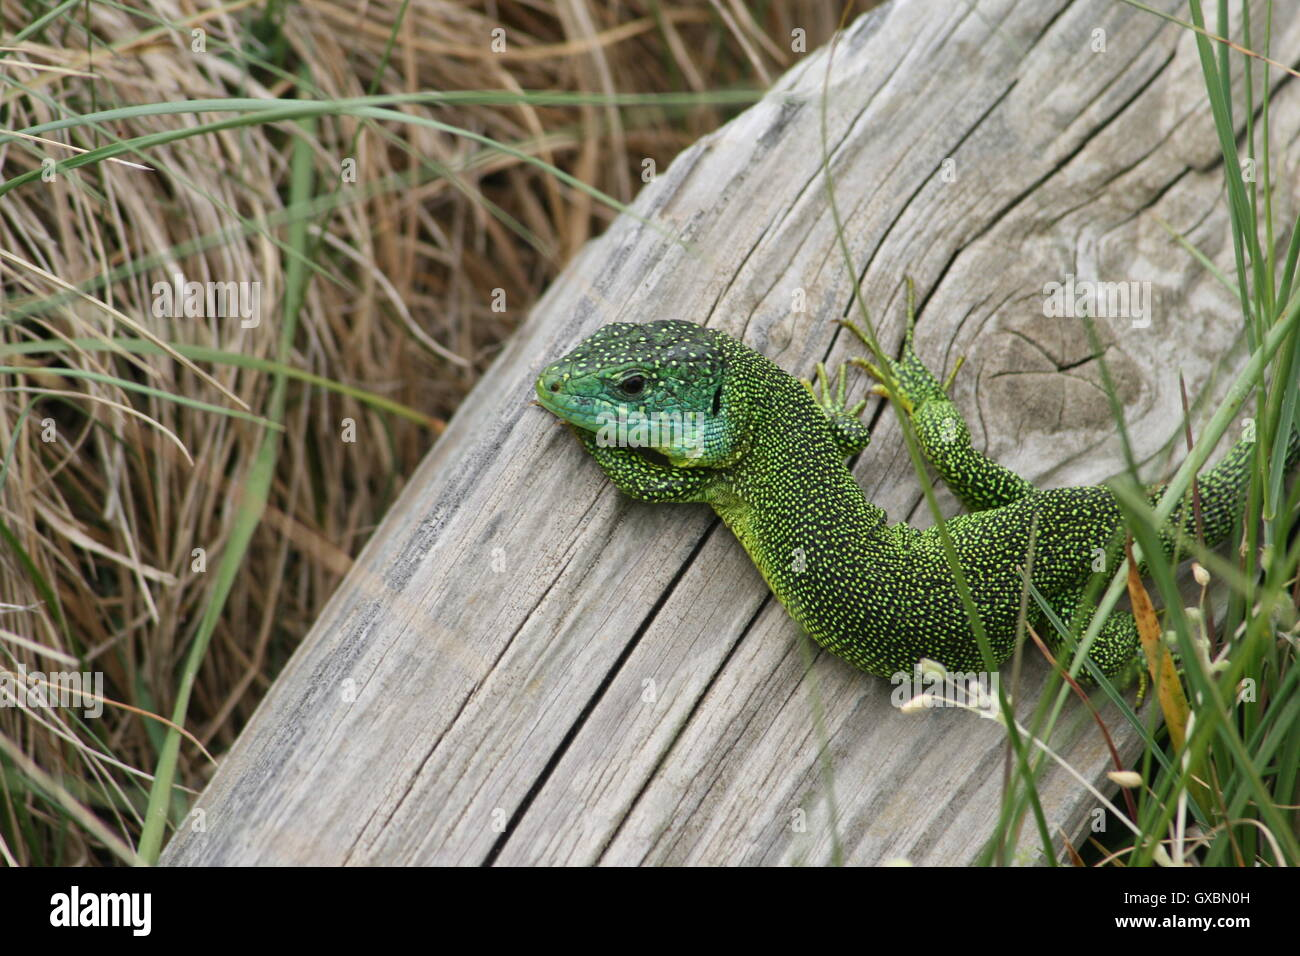 Male green lizard on a piece of wood at St. Ouen's Bay, Jersey, Channel Islands Stock Photo